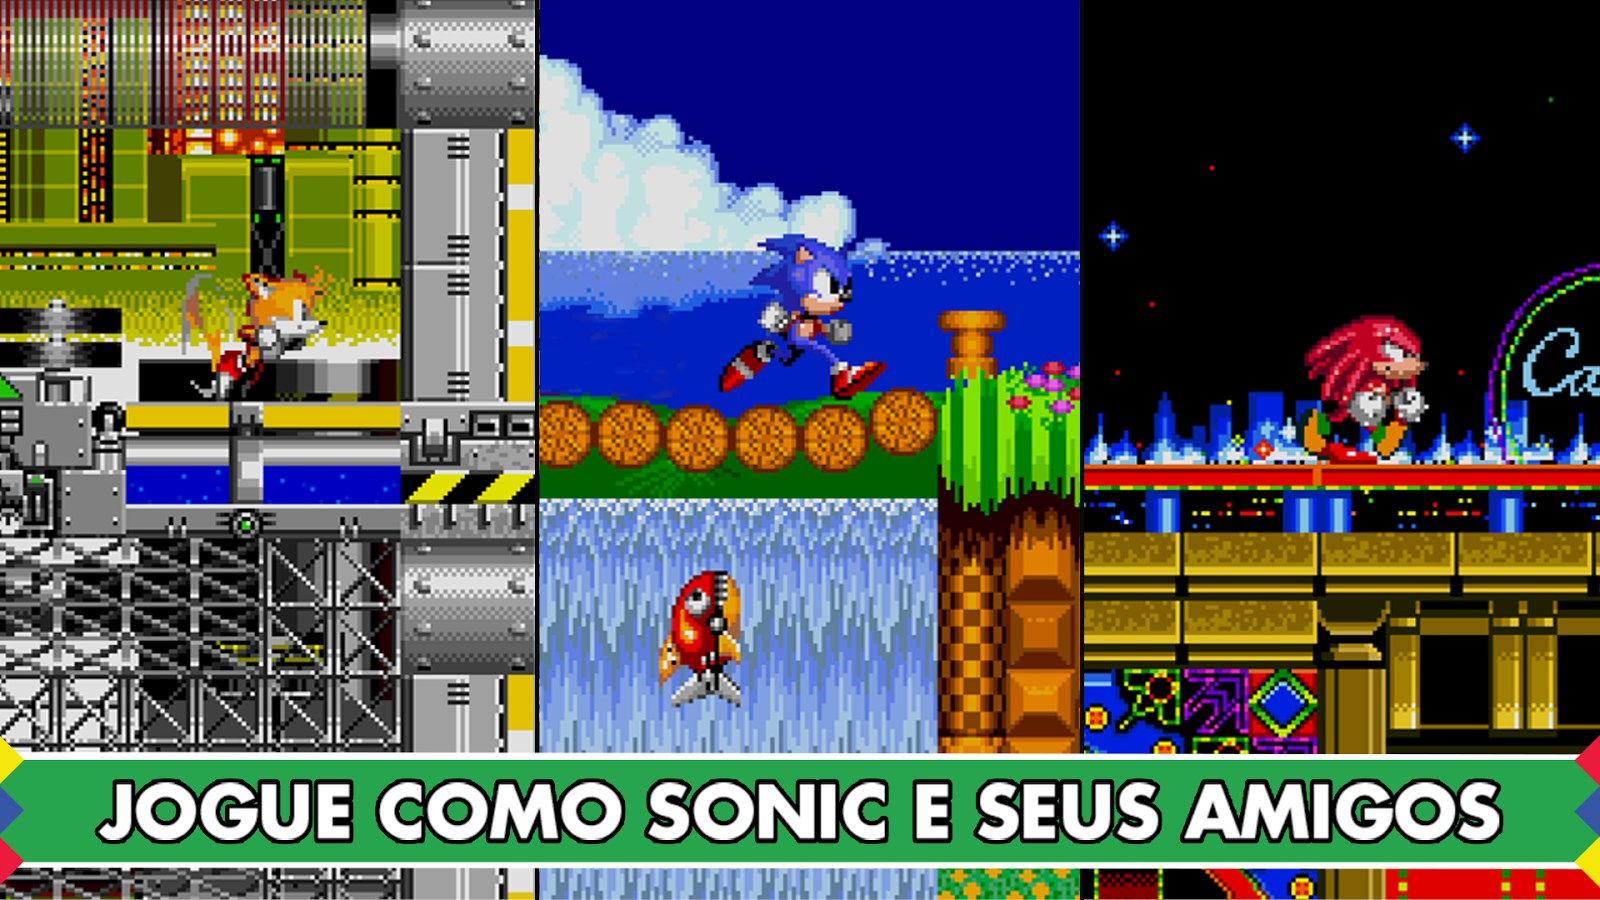 Sonic The Hedgehog 2 - Imagem 2 do software